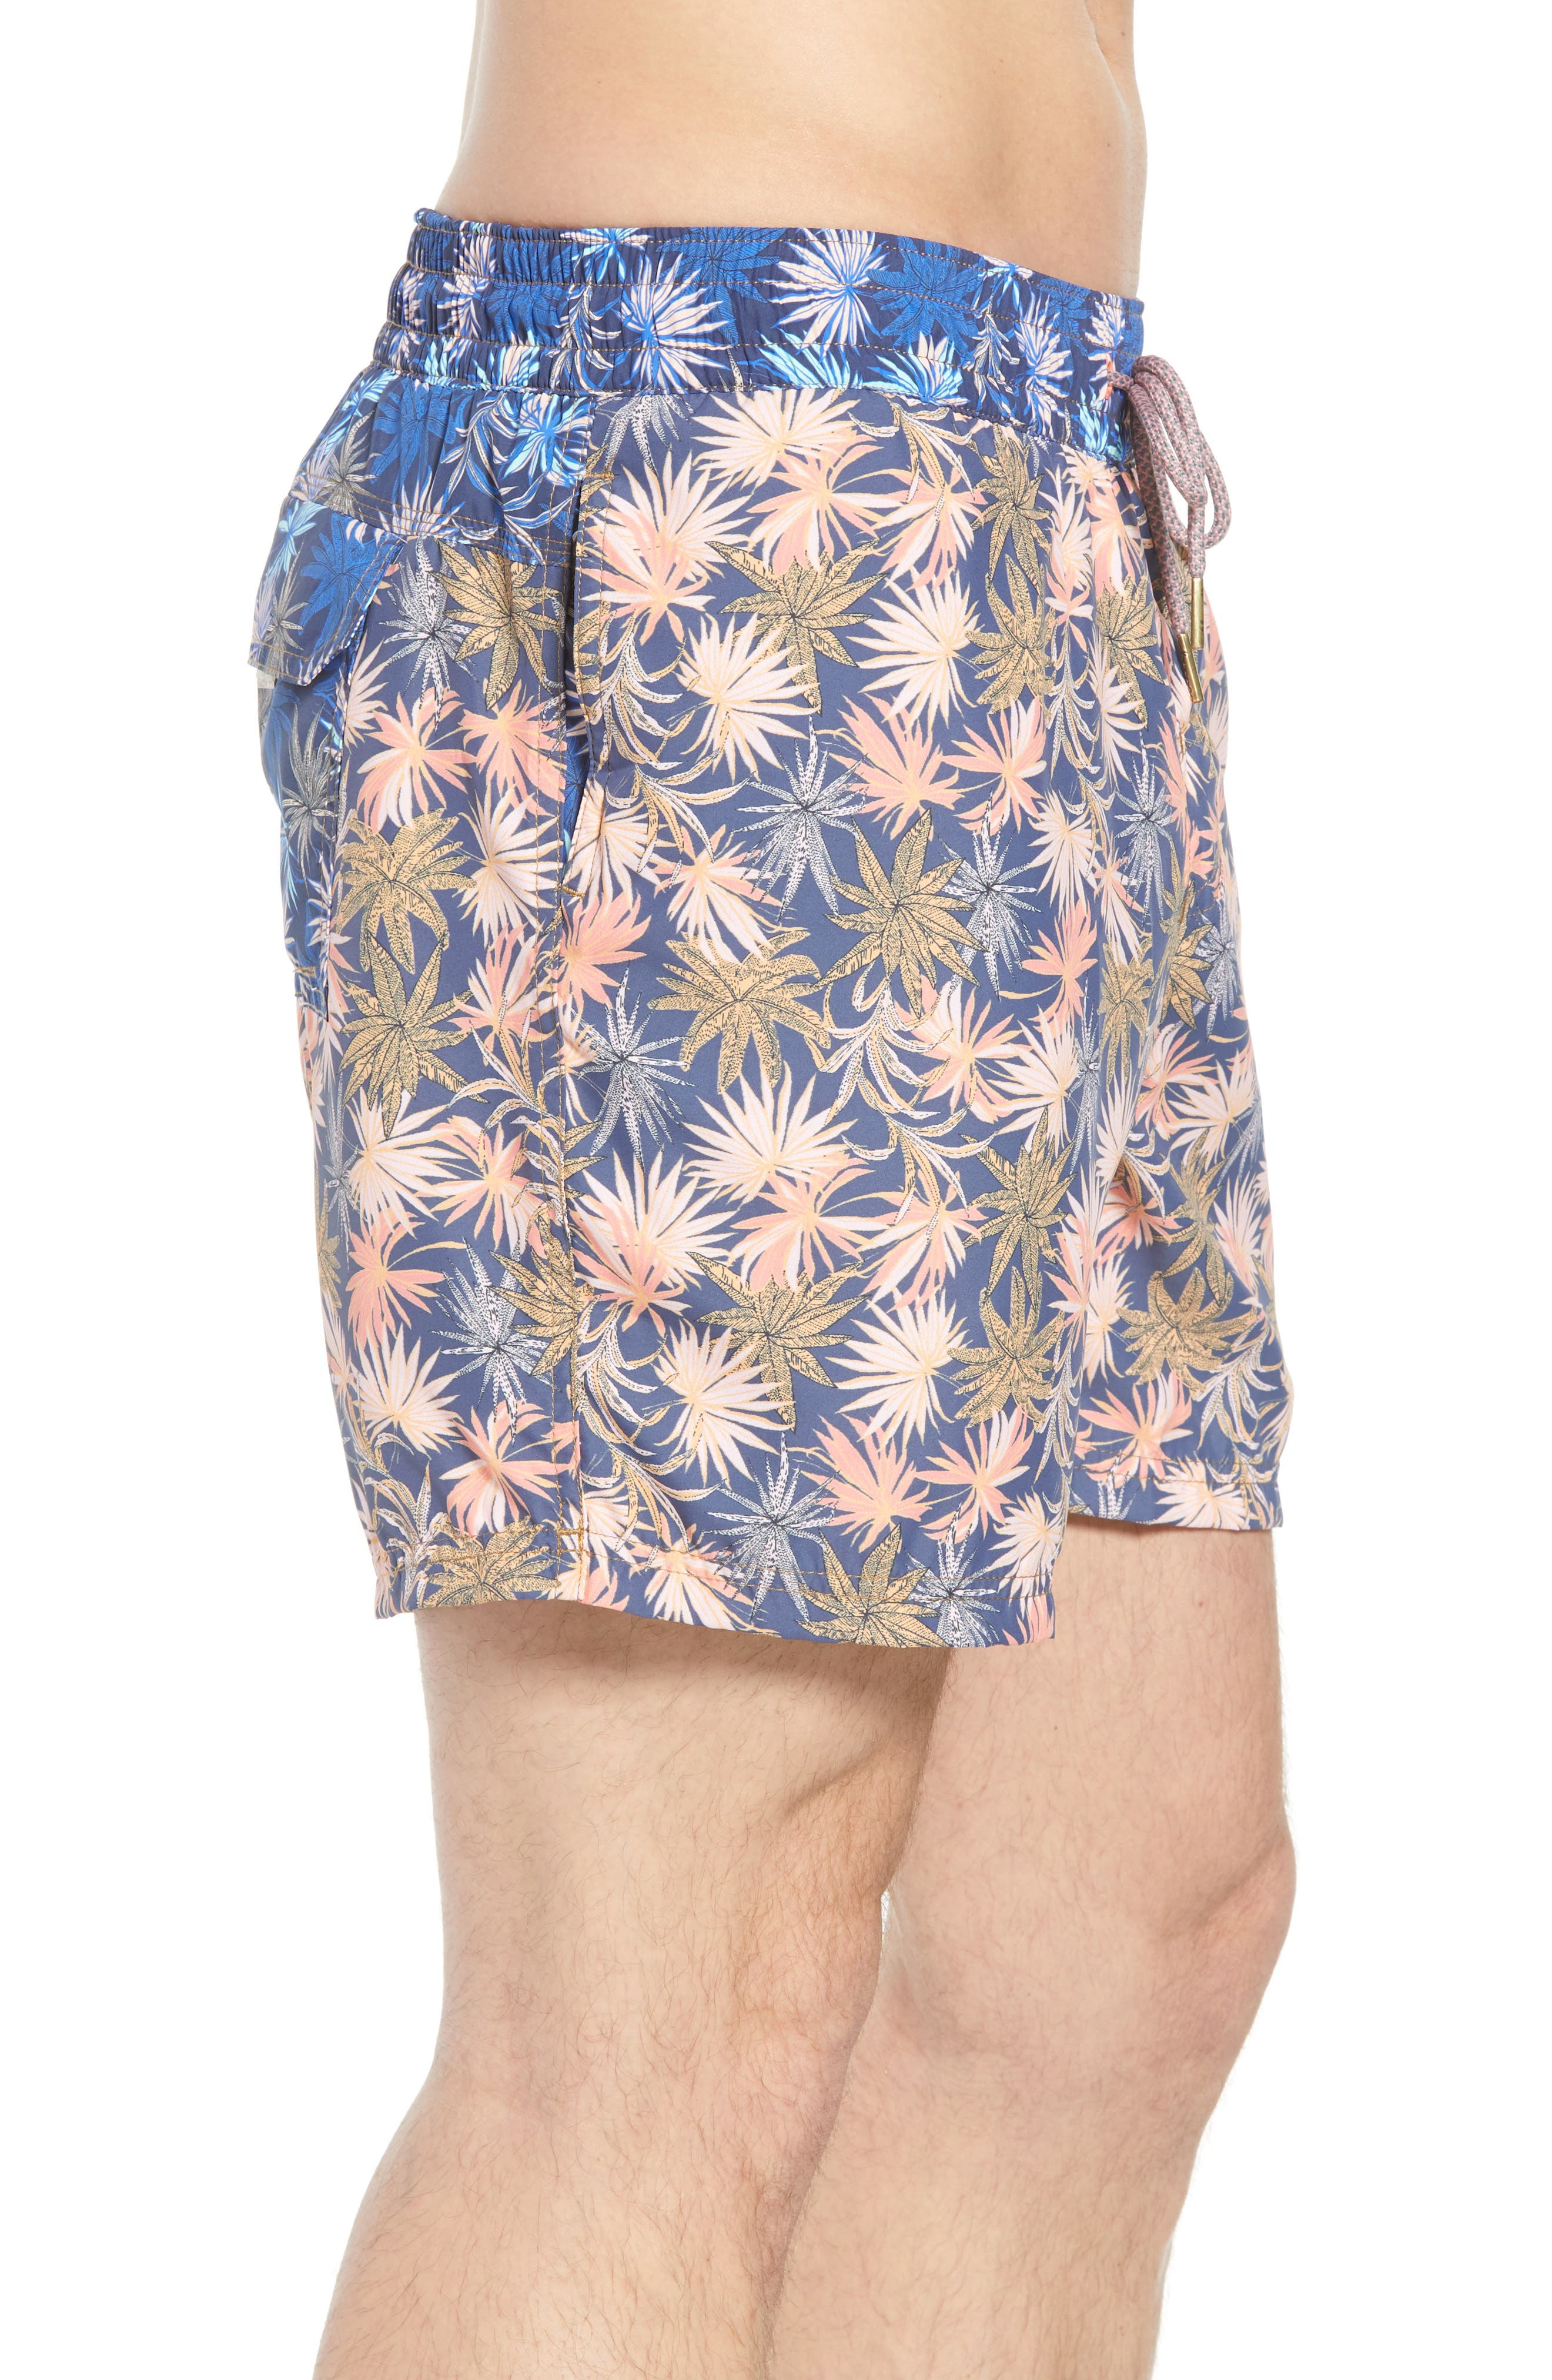 Kickflip Sport Fit Swim Trunks,                             Alternate thumbnail 3, color,                             400